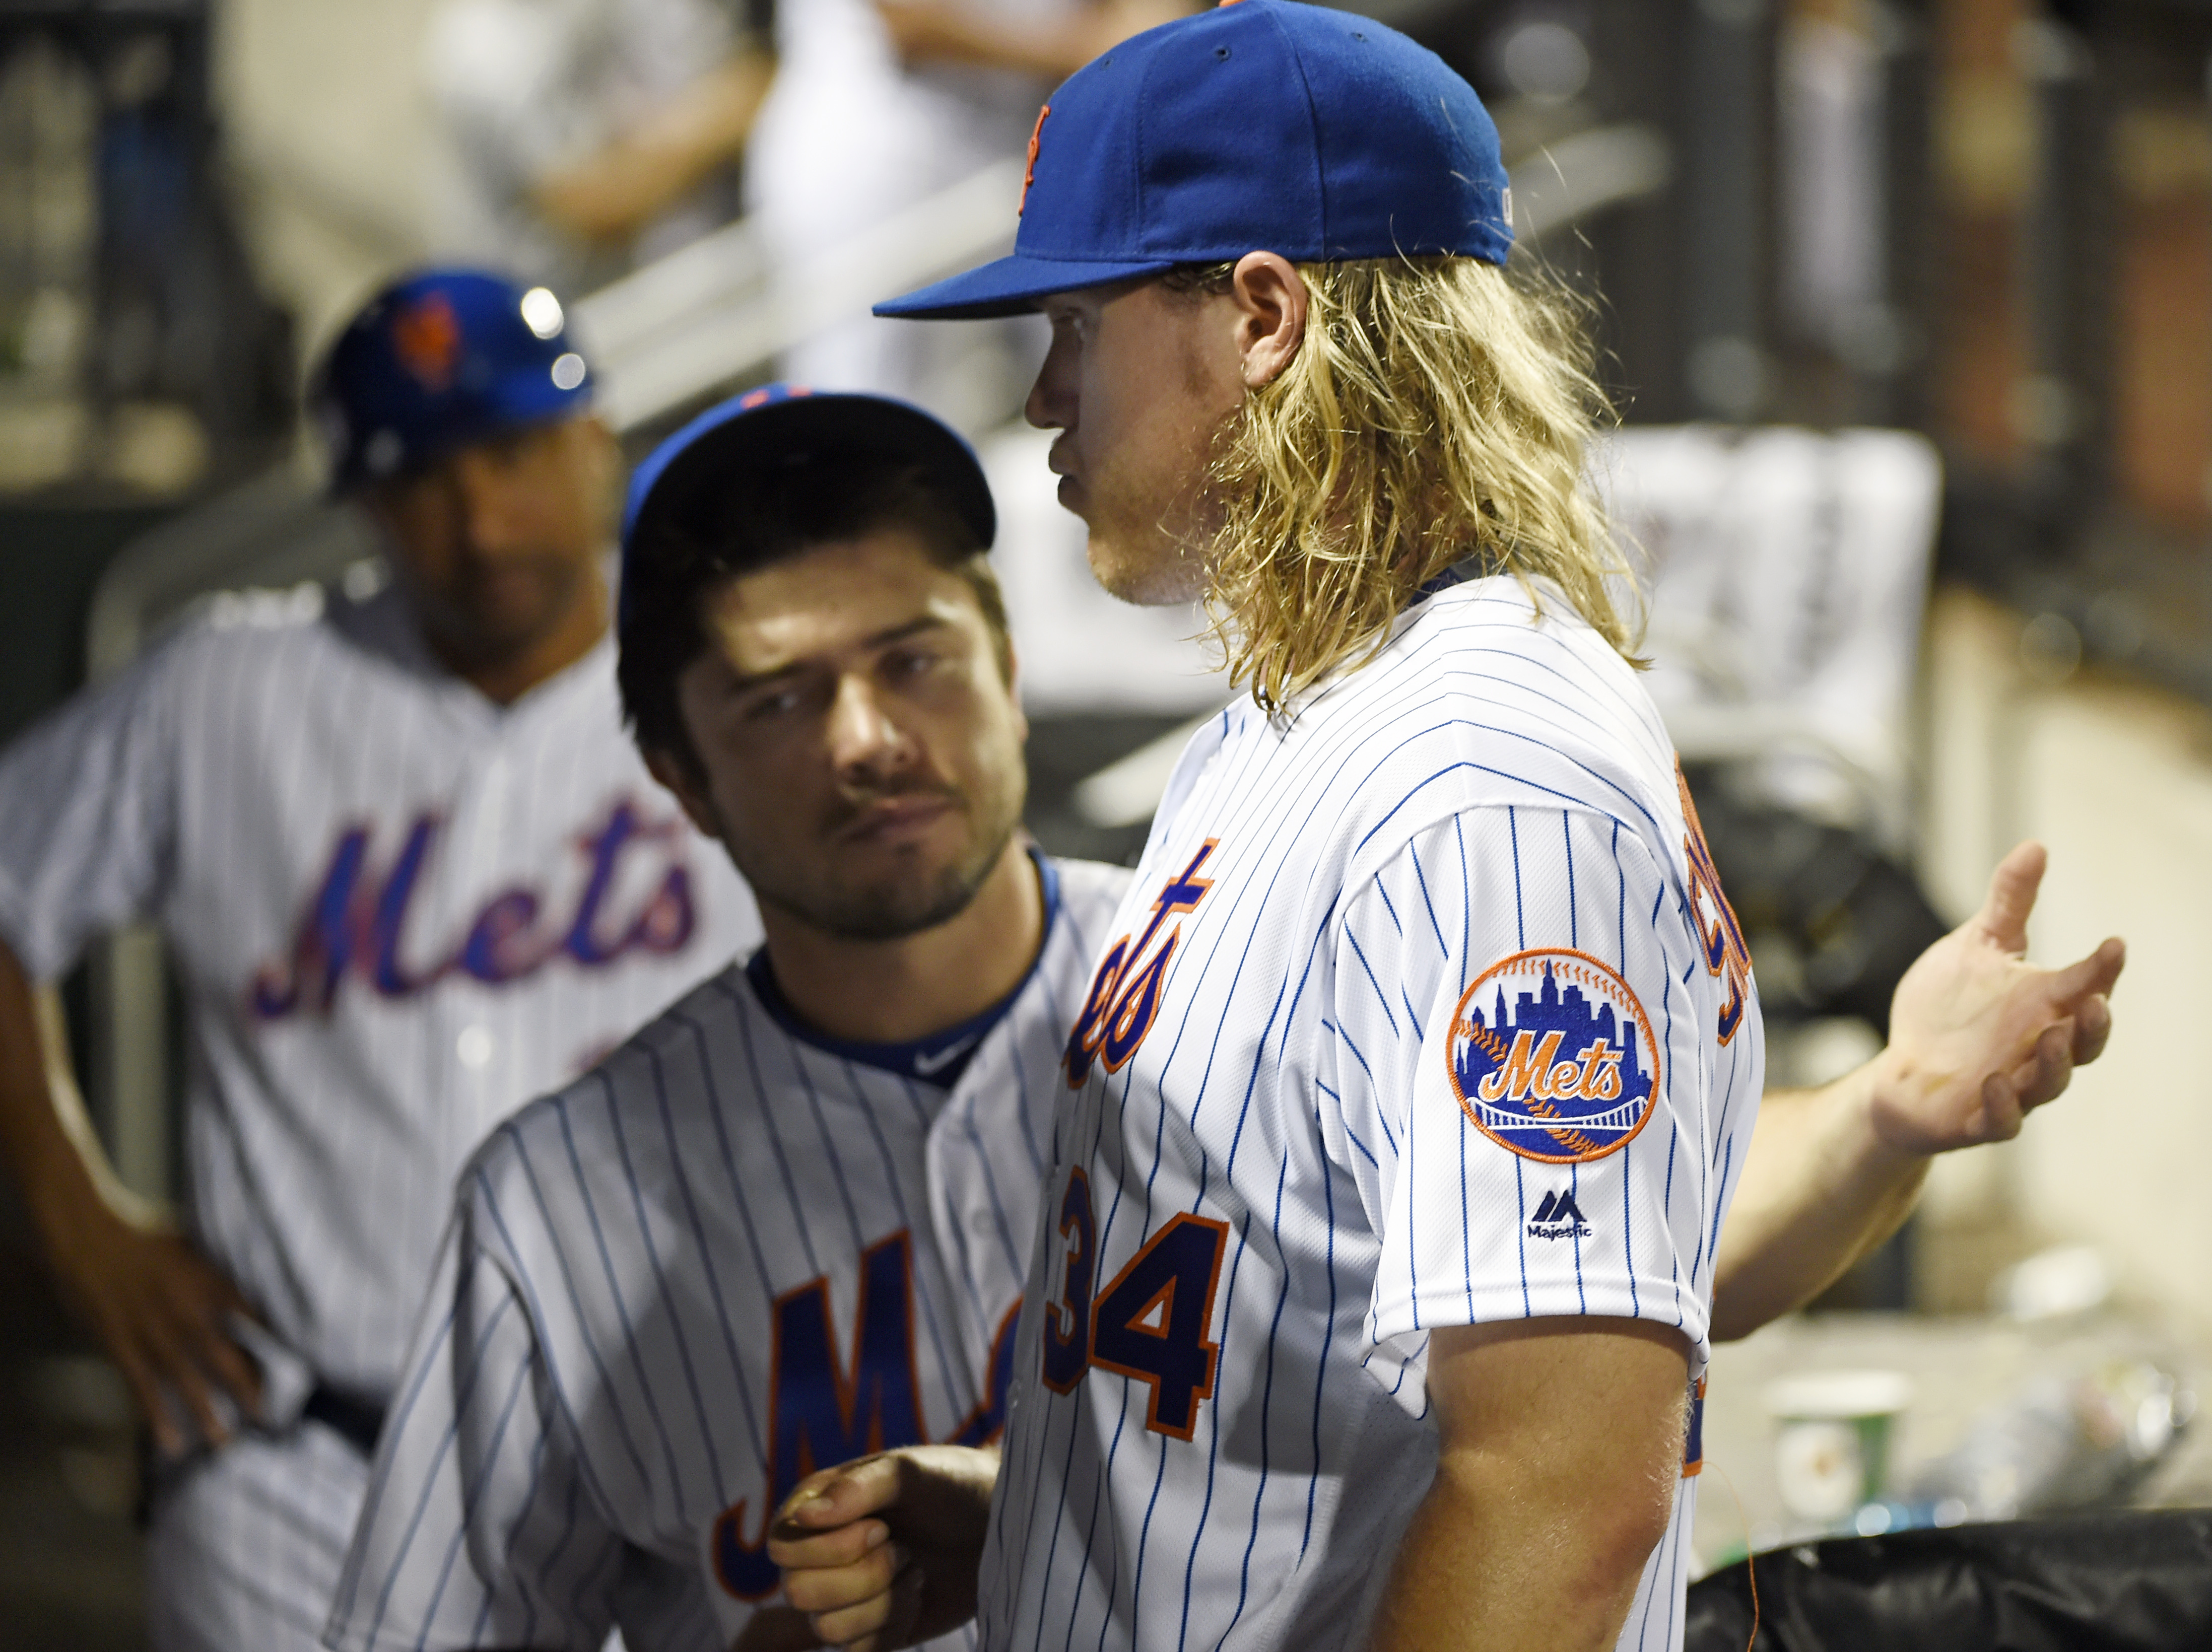 New York Mets catcher Travis d'Arnaud, center, talks with starting pitcher Noah Syndergaard (34) in the dugout after he was taken out of the game by manager Terry Collins in the fifth inning of a baseball game, Friday, July 8, 2016, in New York. A trainer